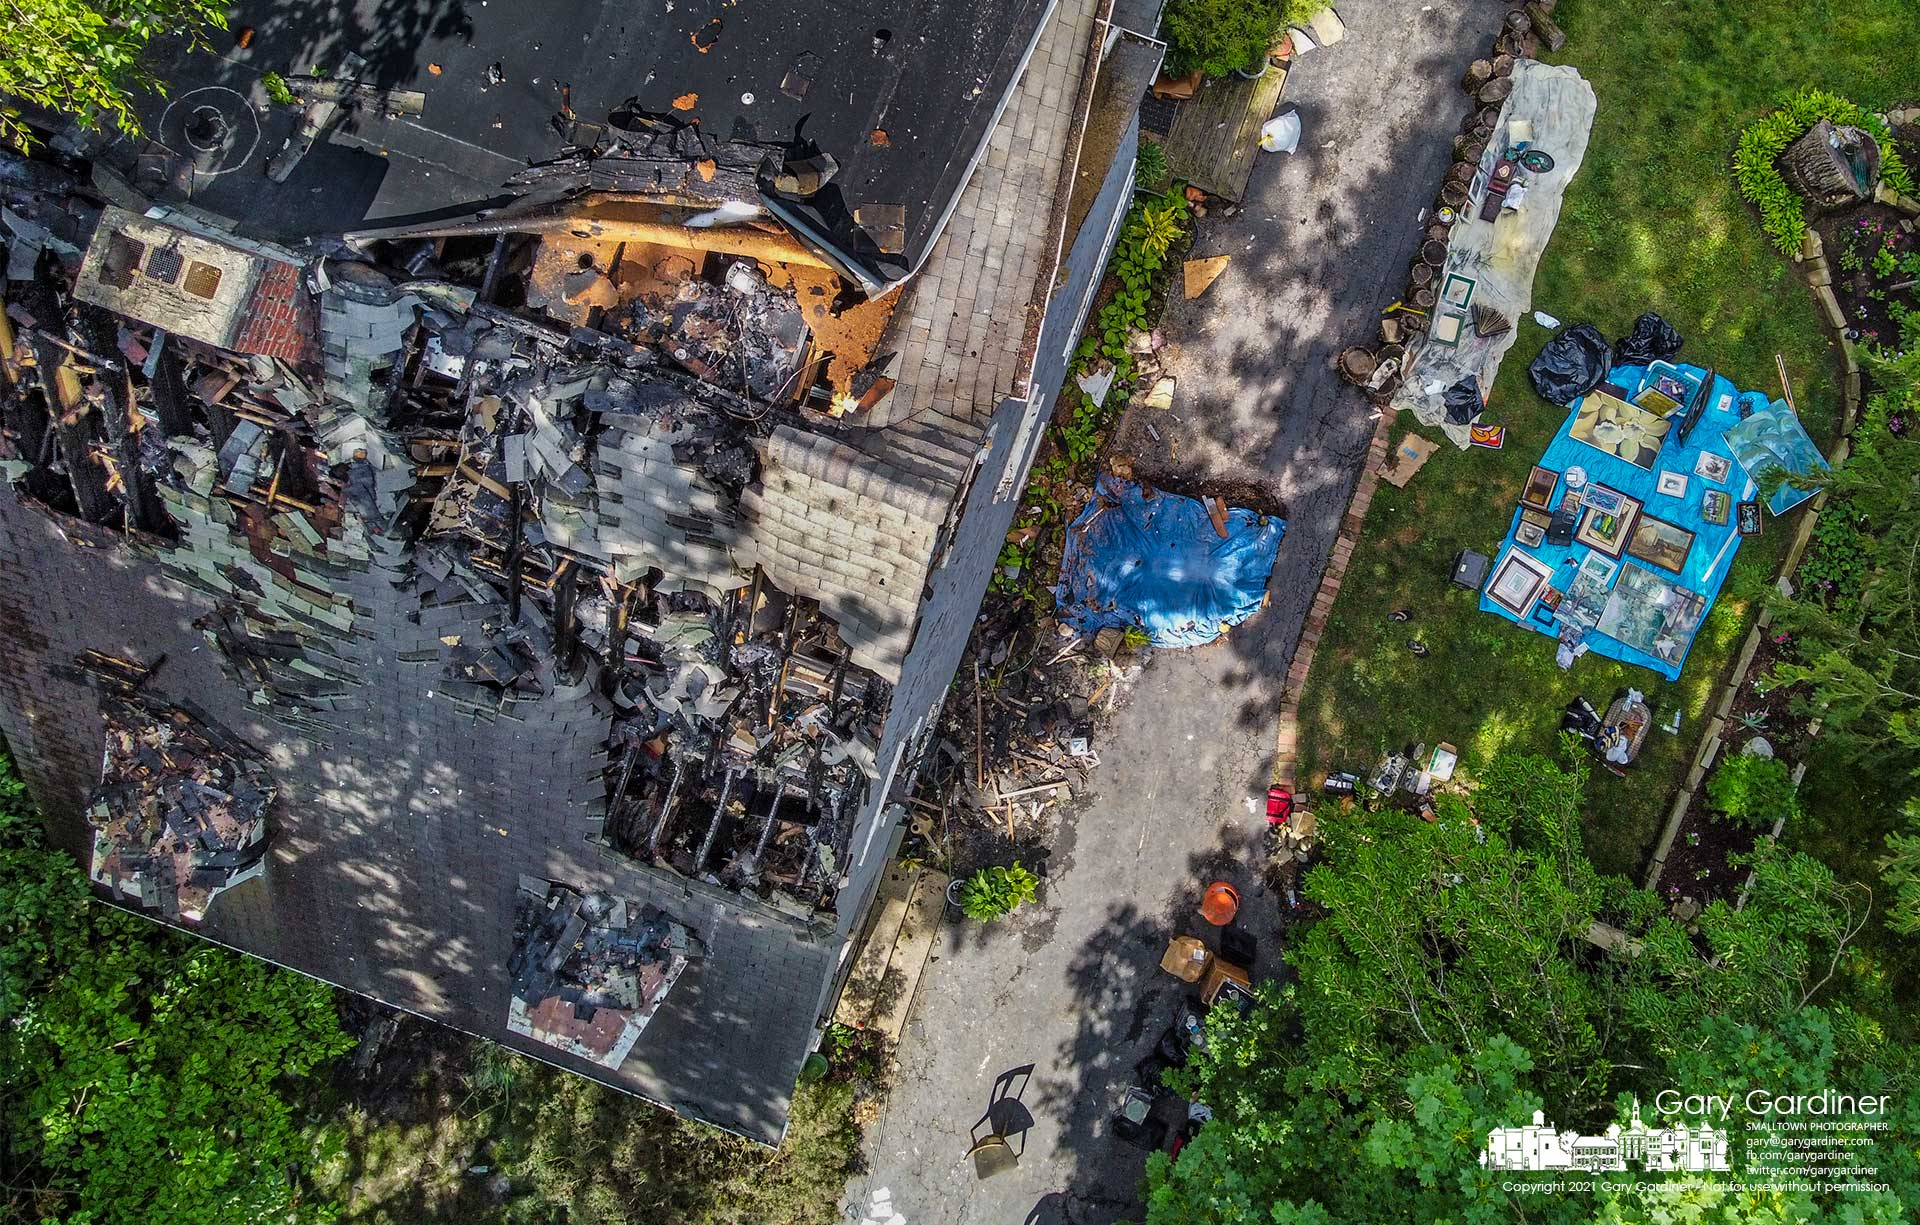 A portion of a family's collection of art and personal belongings are spread out on tarps beside their damaged home after an overnight fire they say started with an overheated lithium-ion battery charger. My Final Photo for July 2, 2021.